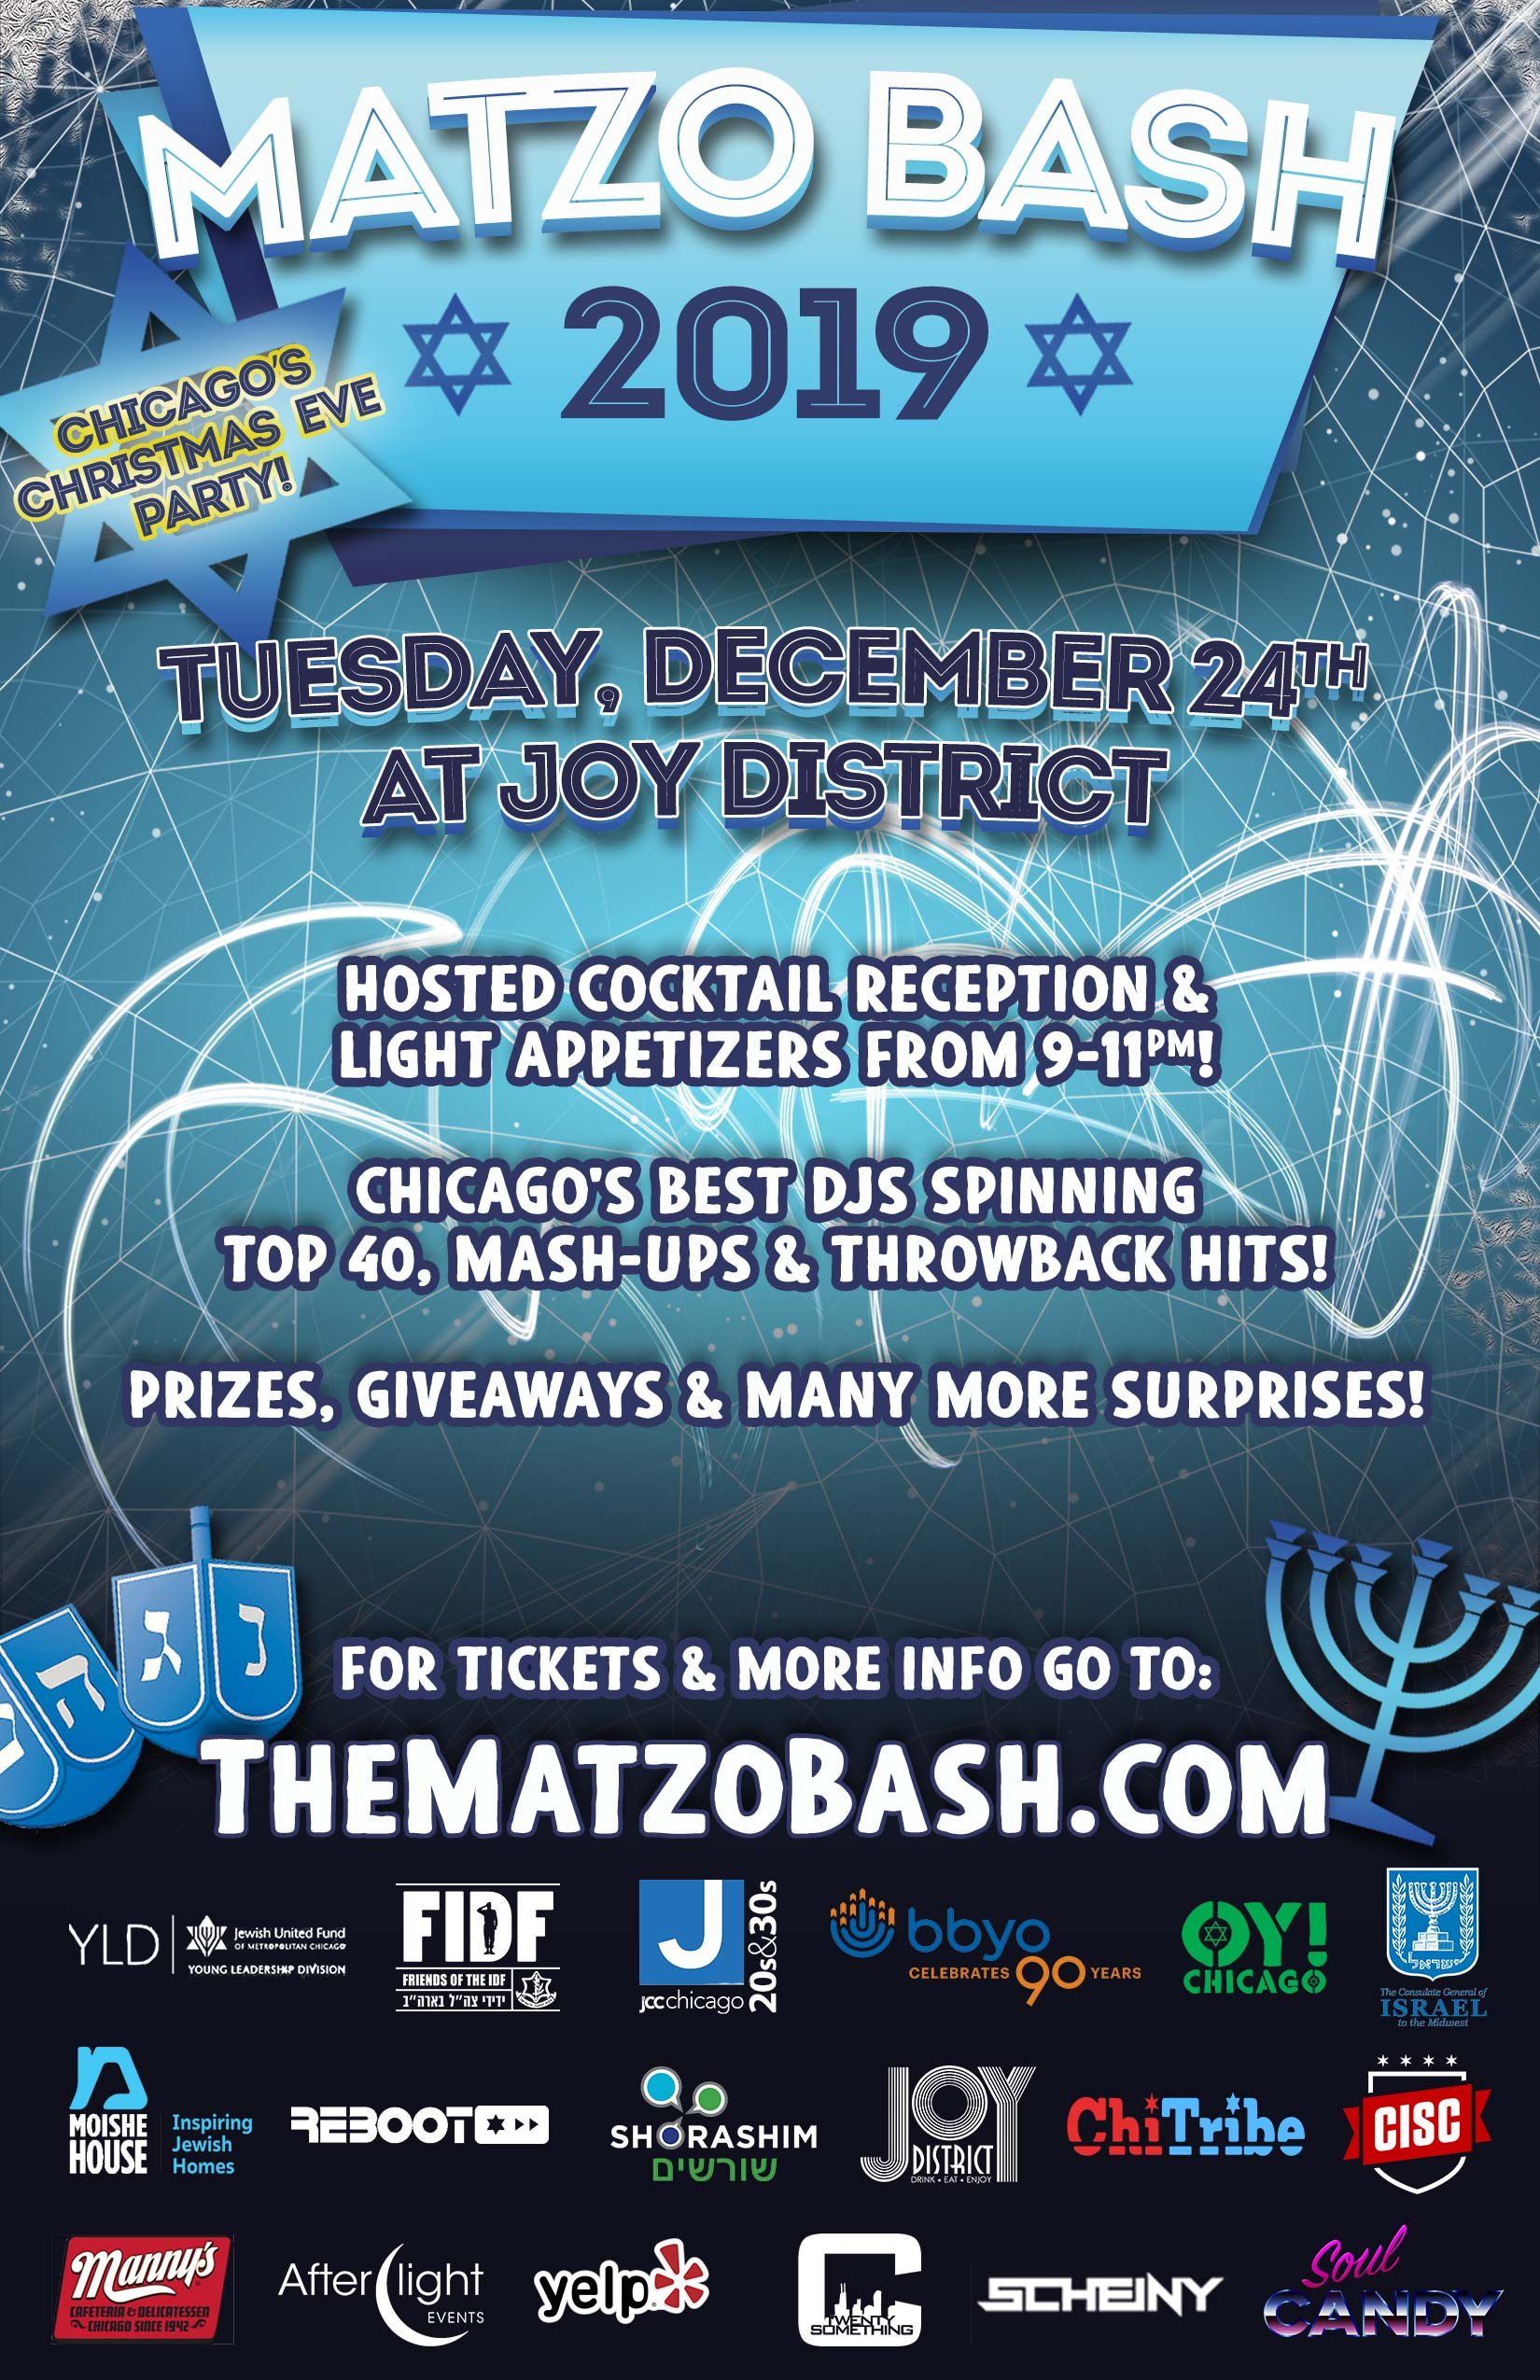 Matzo Bash Party 2019 - Your Discounted Ticket Includes:  Private Hosted Cocktail Reception from 9-11pm and Latkes & Cookies from Manny's! Discounts on VIP table reservations ($150 Bottles of Effen if booked in advance) Two levels of schmoozing & dancing! A portion of the proceeds will benefit: Young Leadership Division of JUF (YLD), JCC 20's & 30's, Shorashim, BBYO, OY! Chicago, Emanuel Congregation, FIDF,  Moishe House & Reboot! And More!